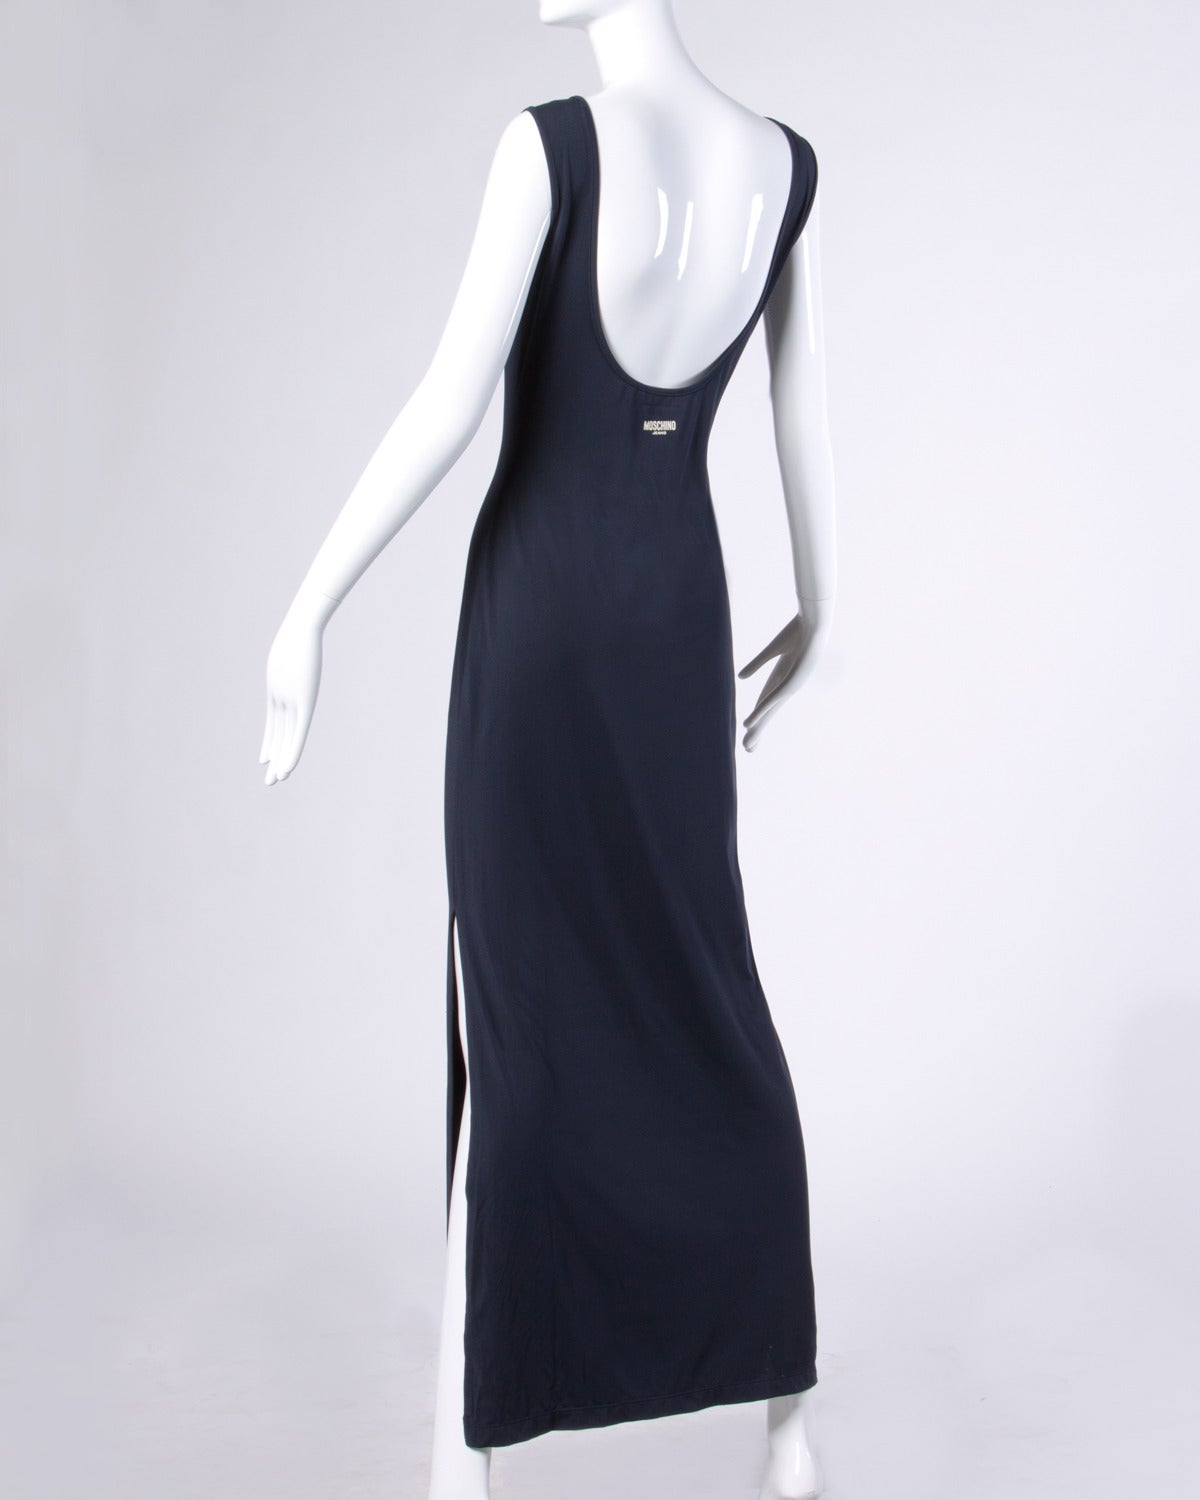 Collectible millennium maxi dress with a colorful